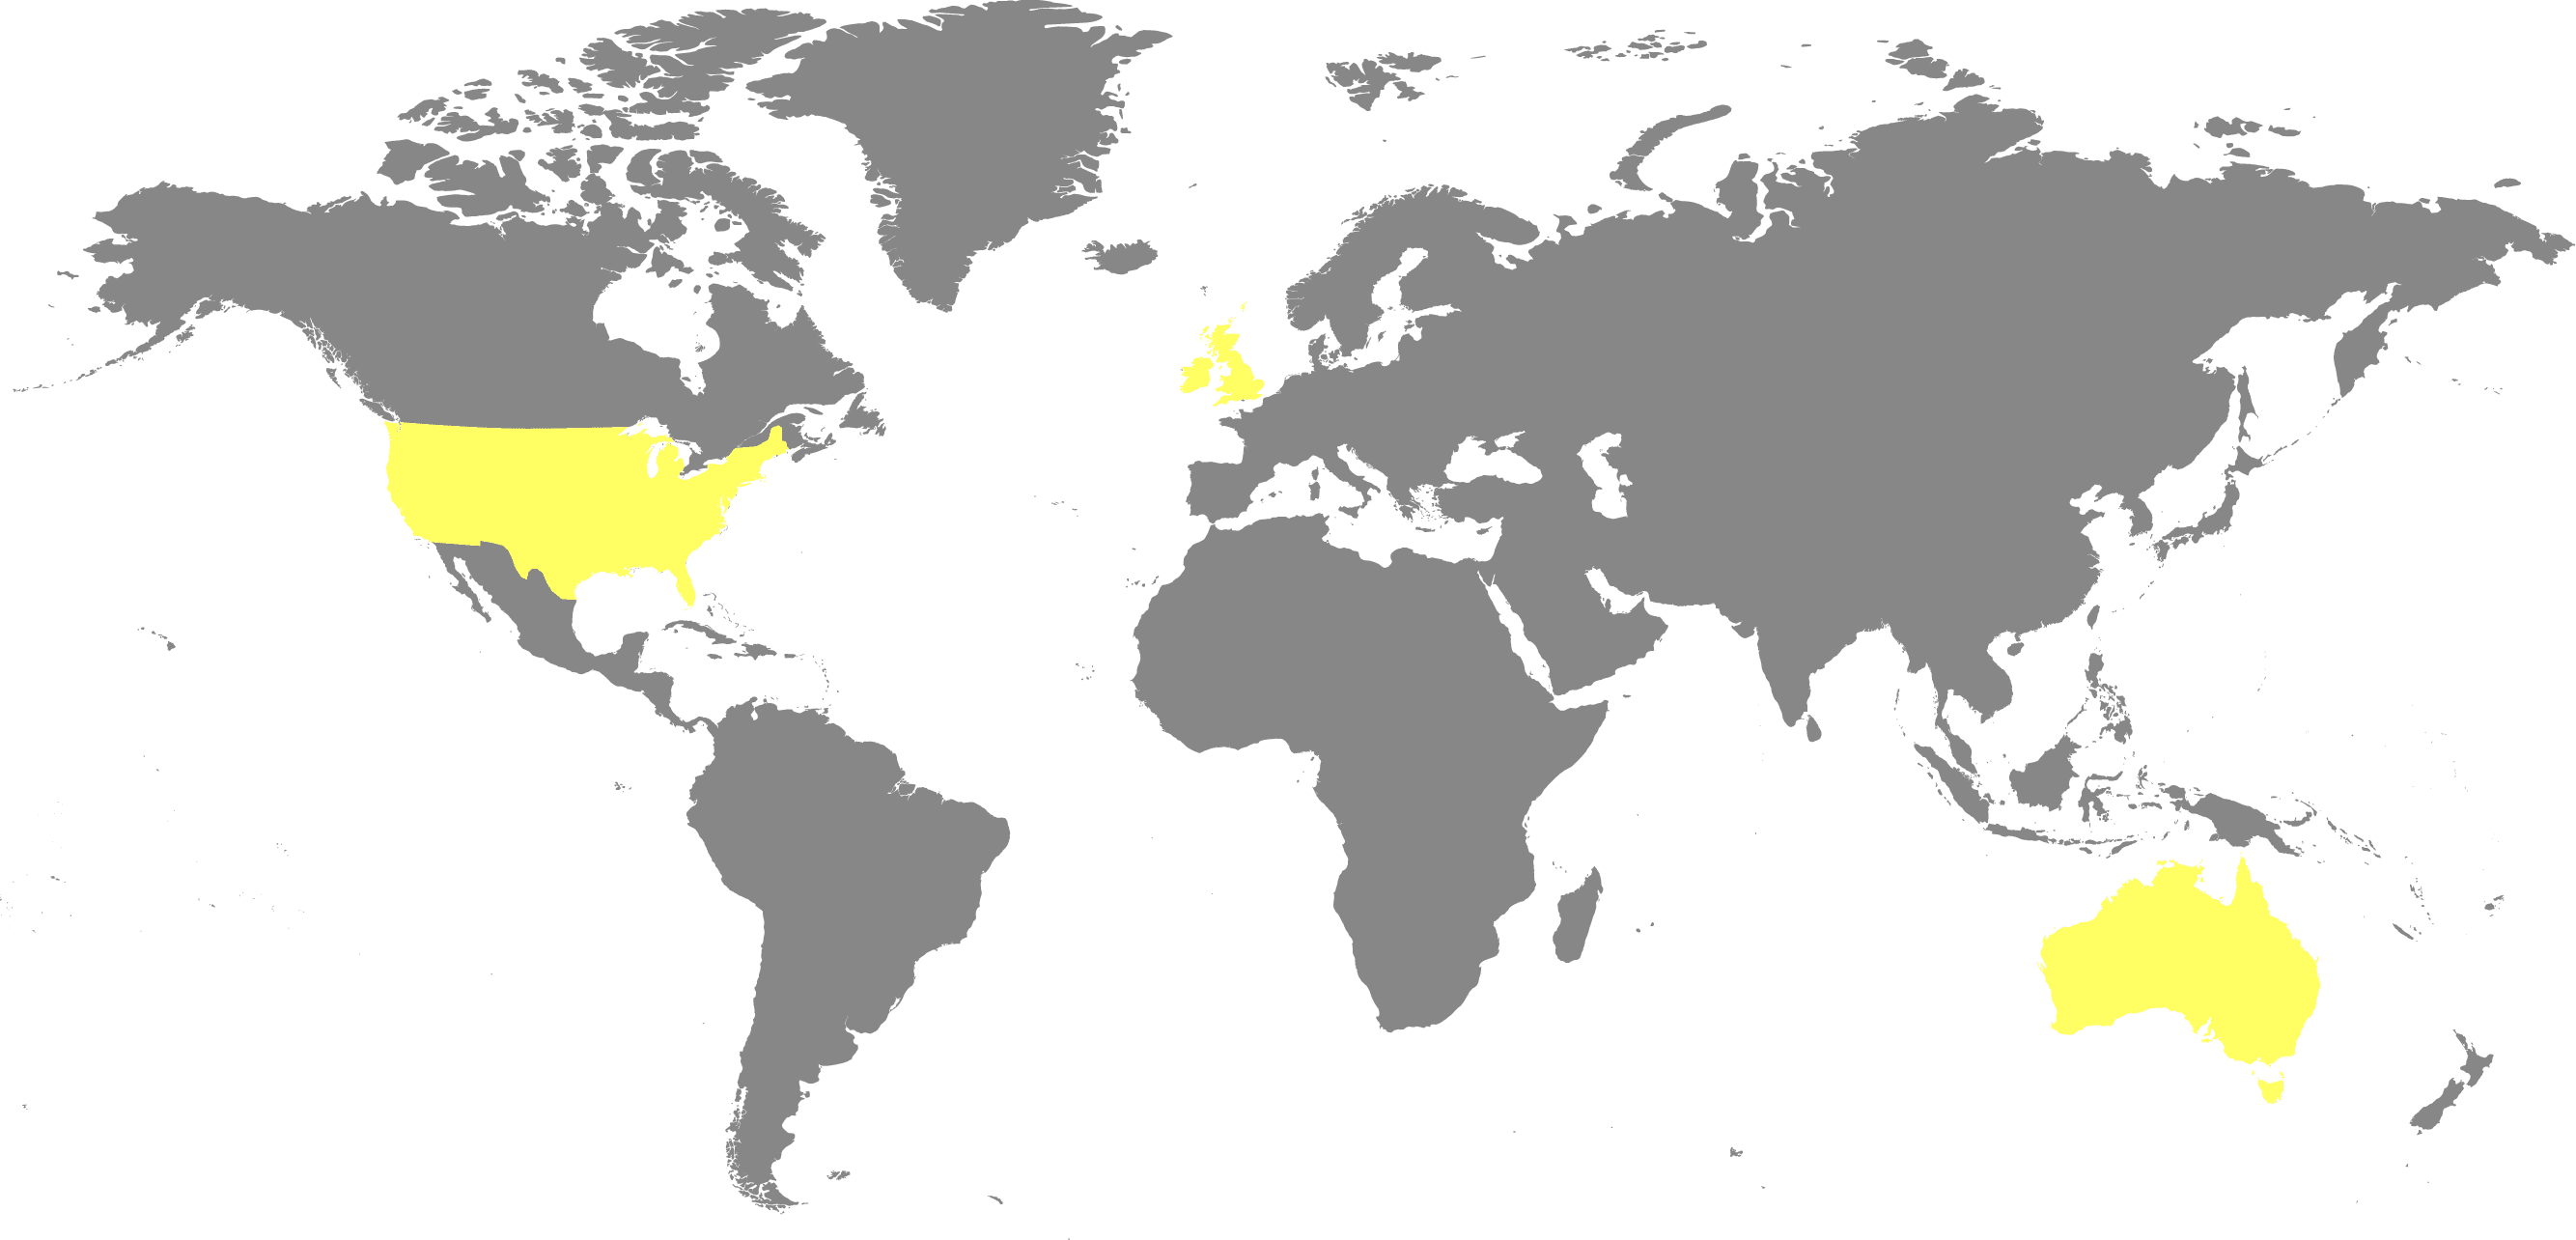 World map: we're in the UK, US and Australia